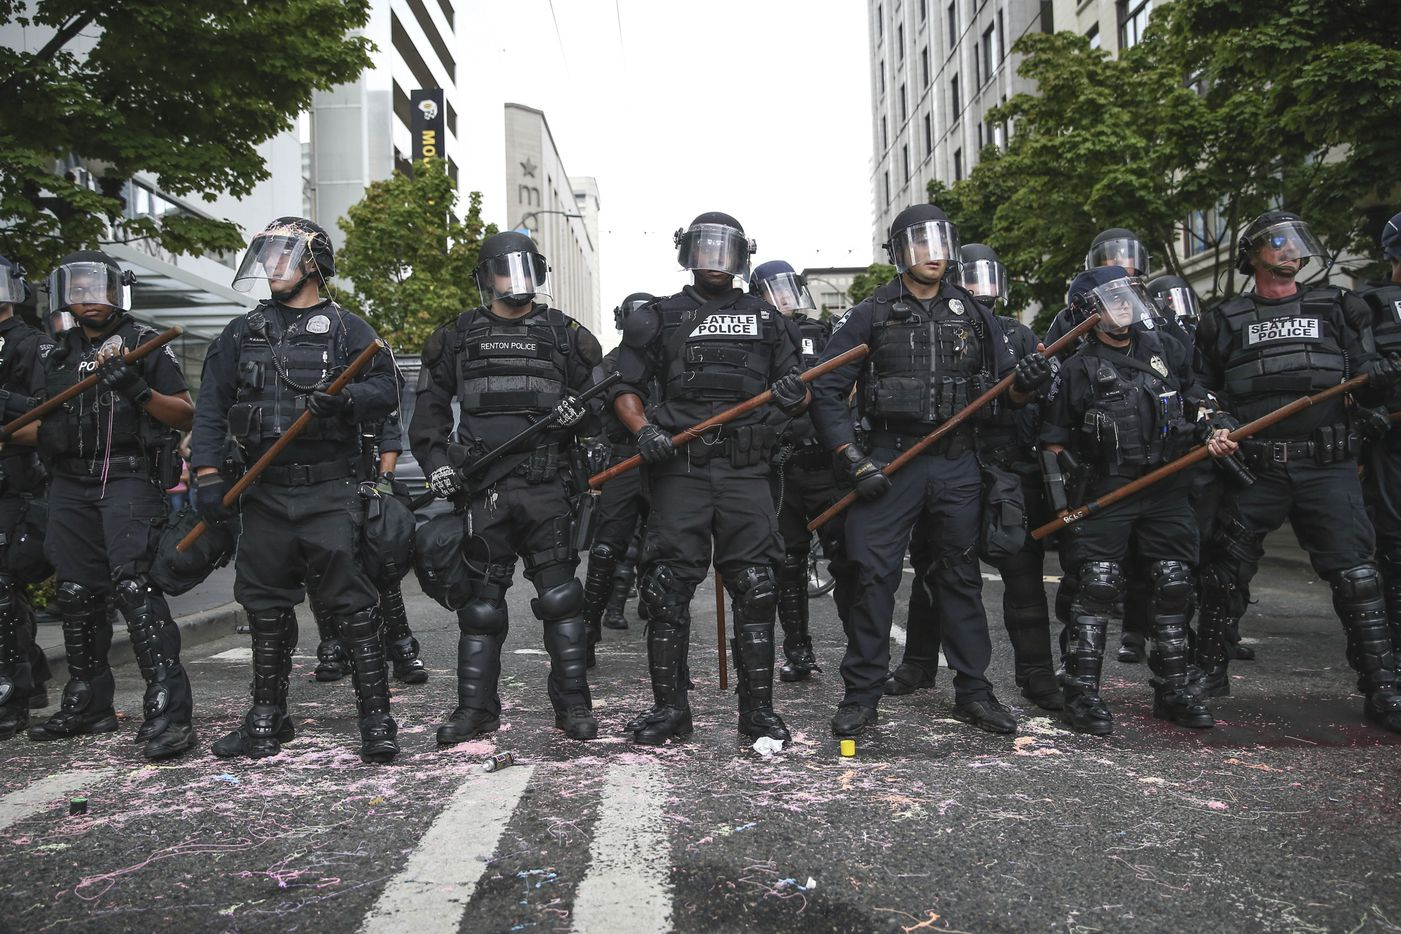 Police stand during a rally Sunday, Aug. 13, 2017, in Seattle. Hundreds of demonstrators and counter-protesters converged in downtown Seattle one day after violent clashes in Charlottesville, Va.